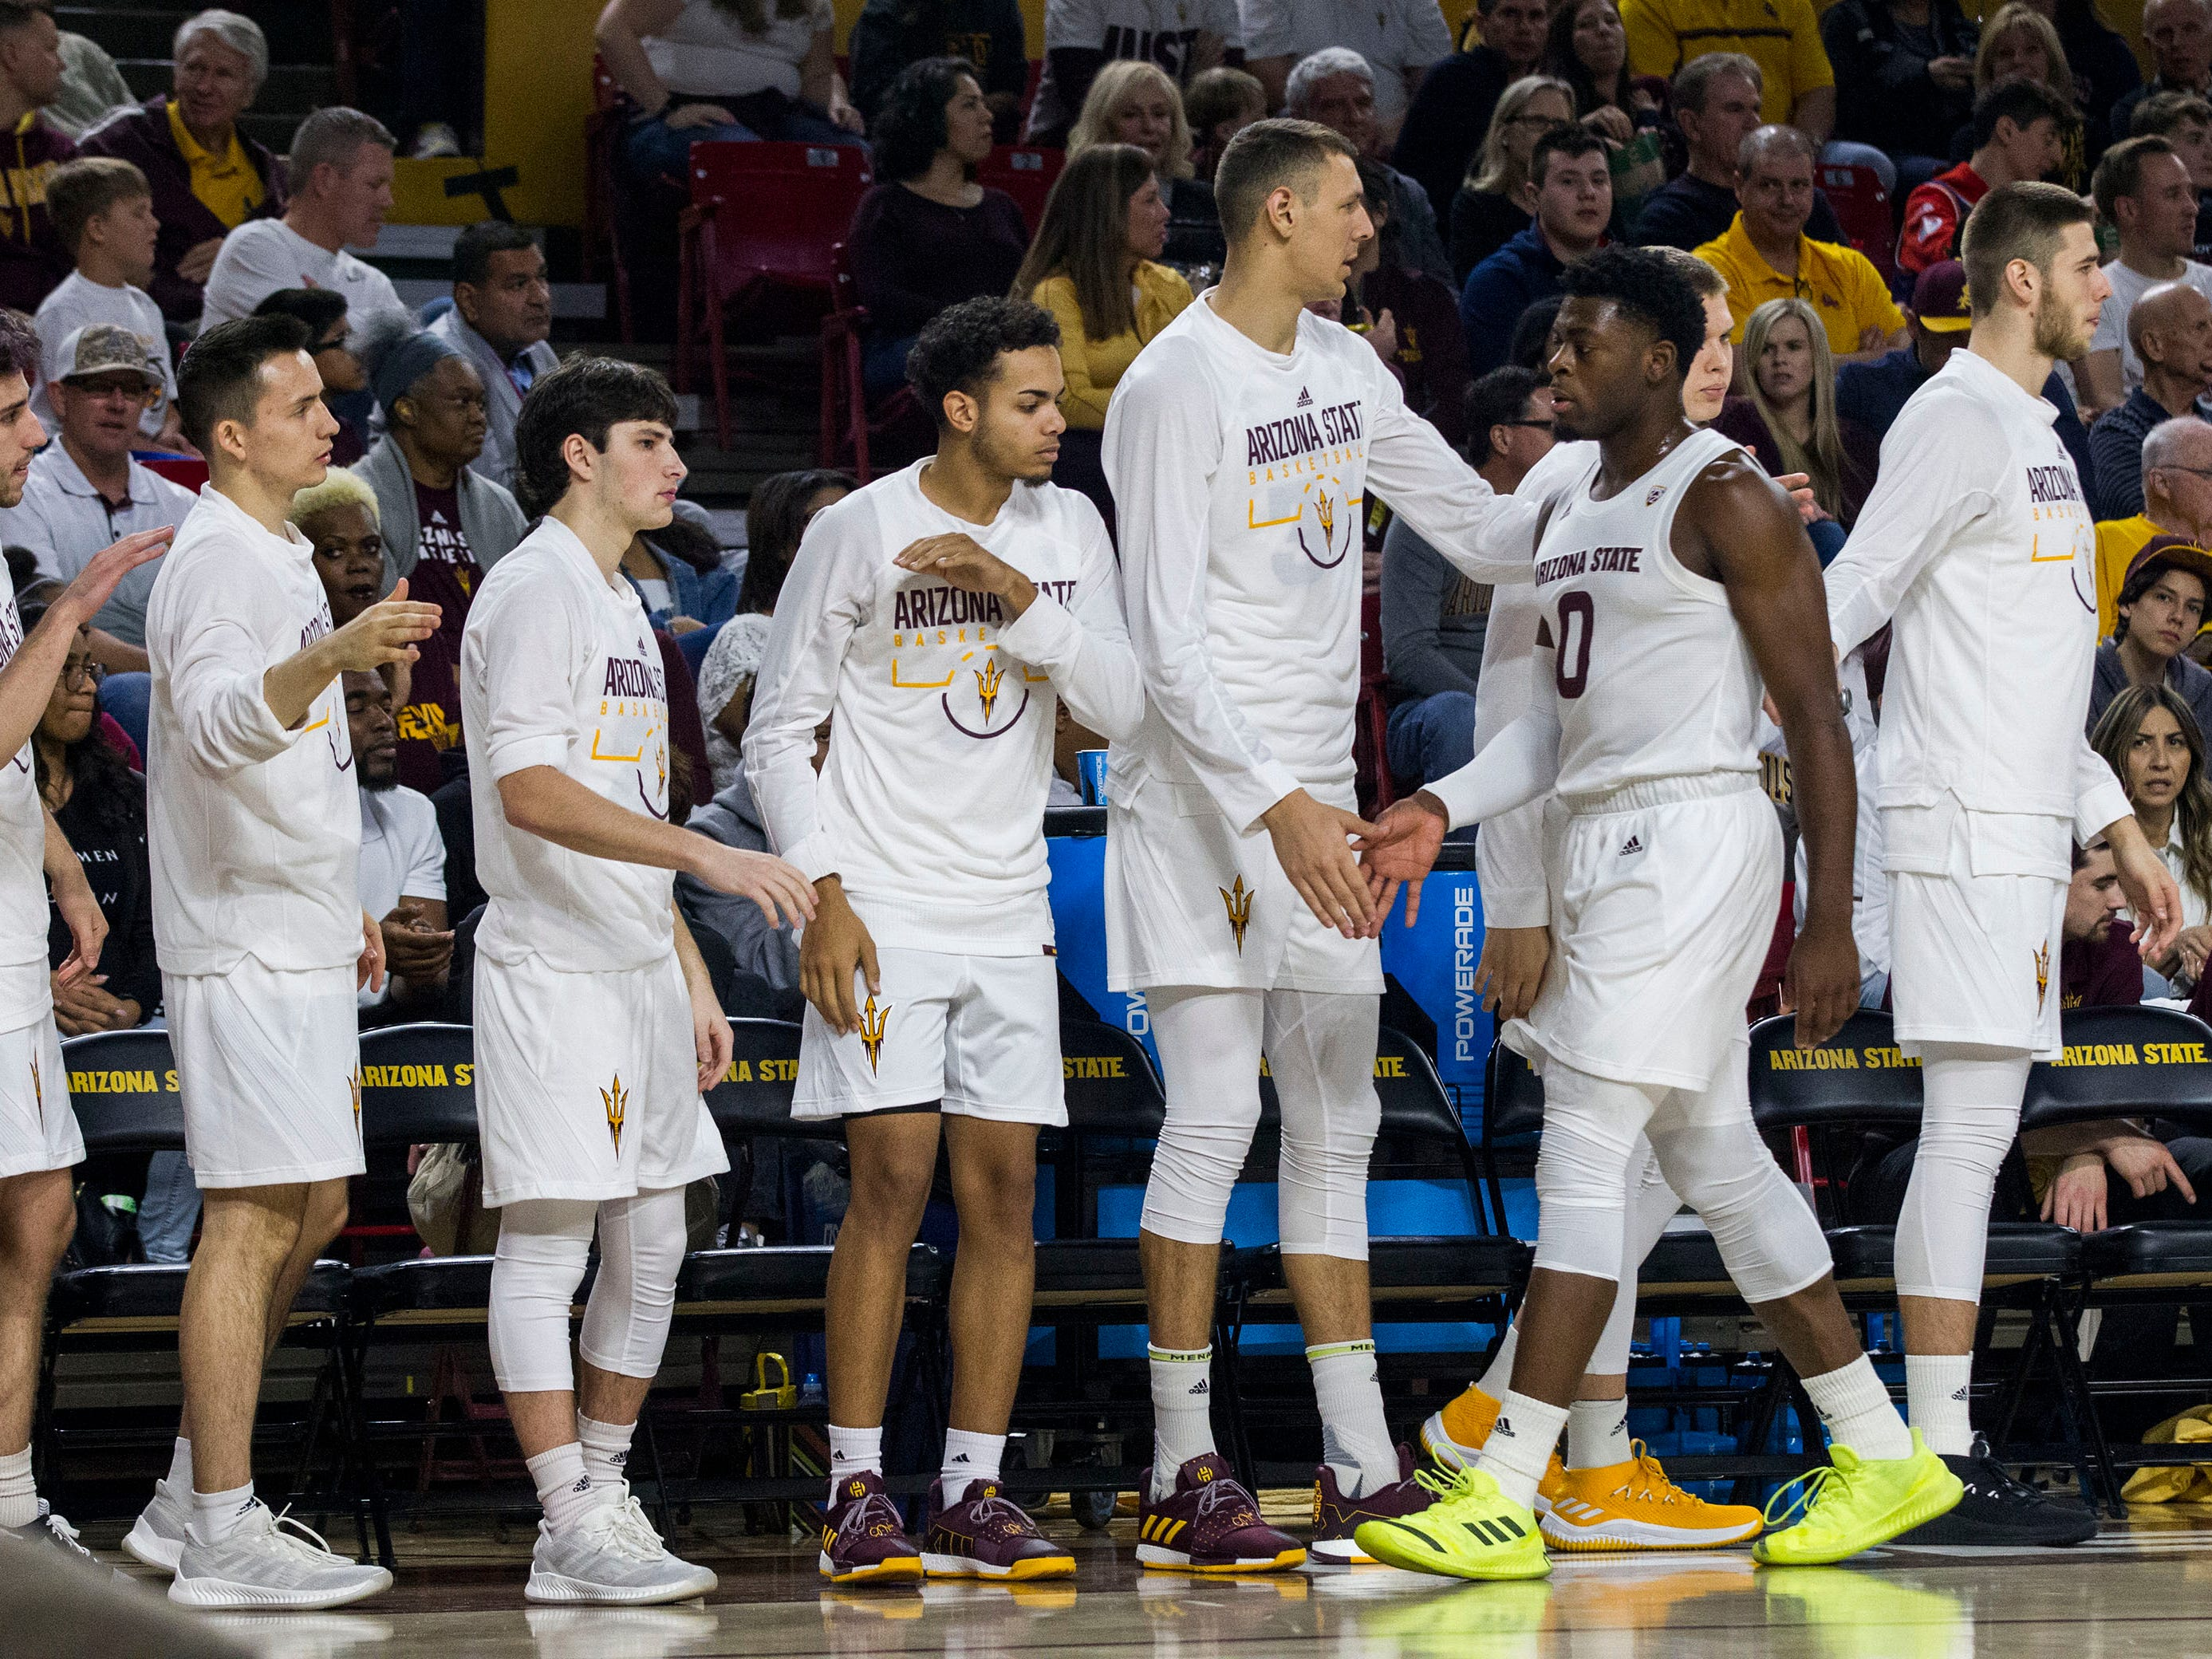 Arizona State's Luguentz Dort (0) is greeted by players on the bench as he come out of the game during the first half against Oregon, Saturday, Jan. 19, 2019, in Tempe, Ariz. (AP Photo/Darryl Webb)